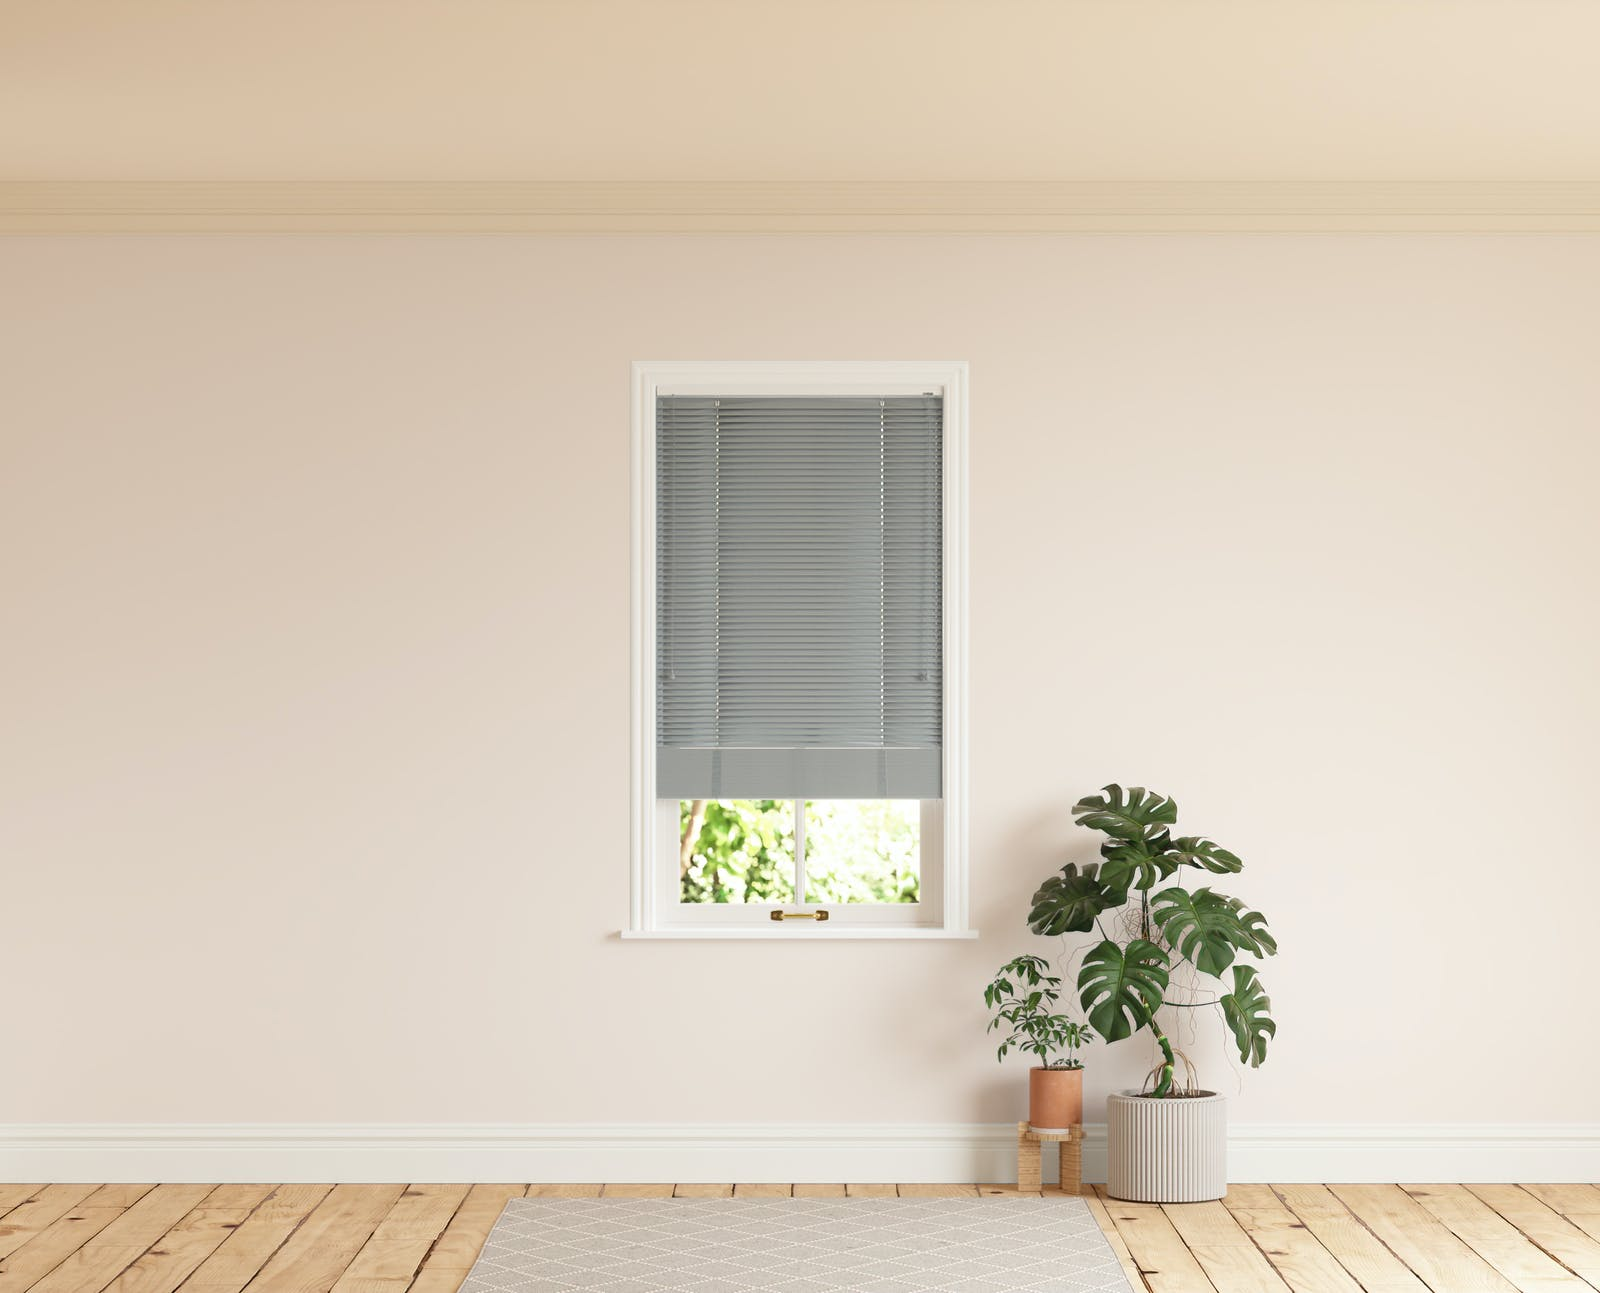 Room with walls painted in Lick Pink 01 and Grey 06 Venetian blinds